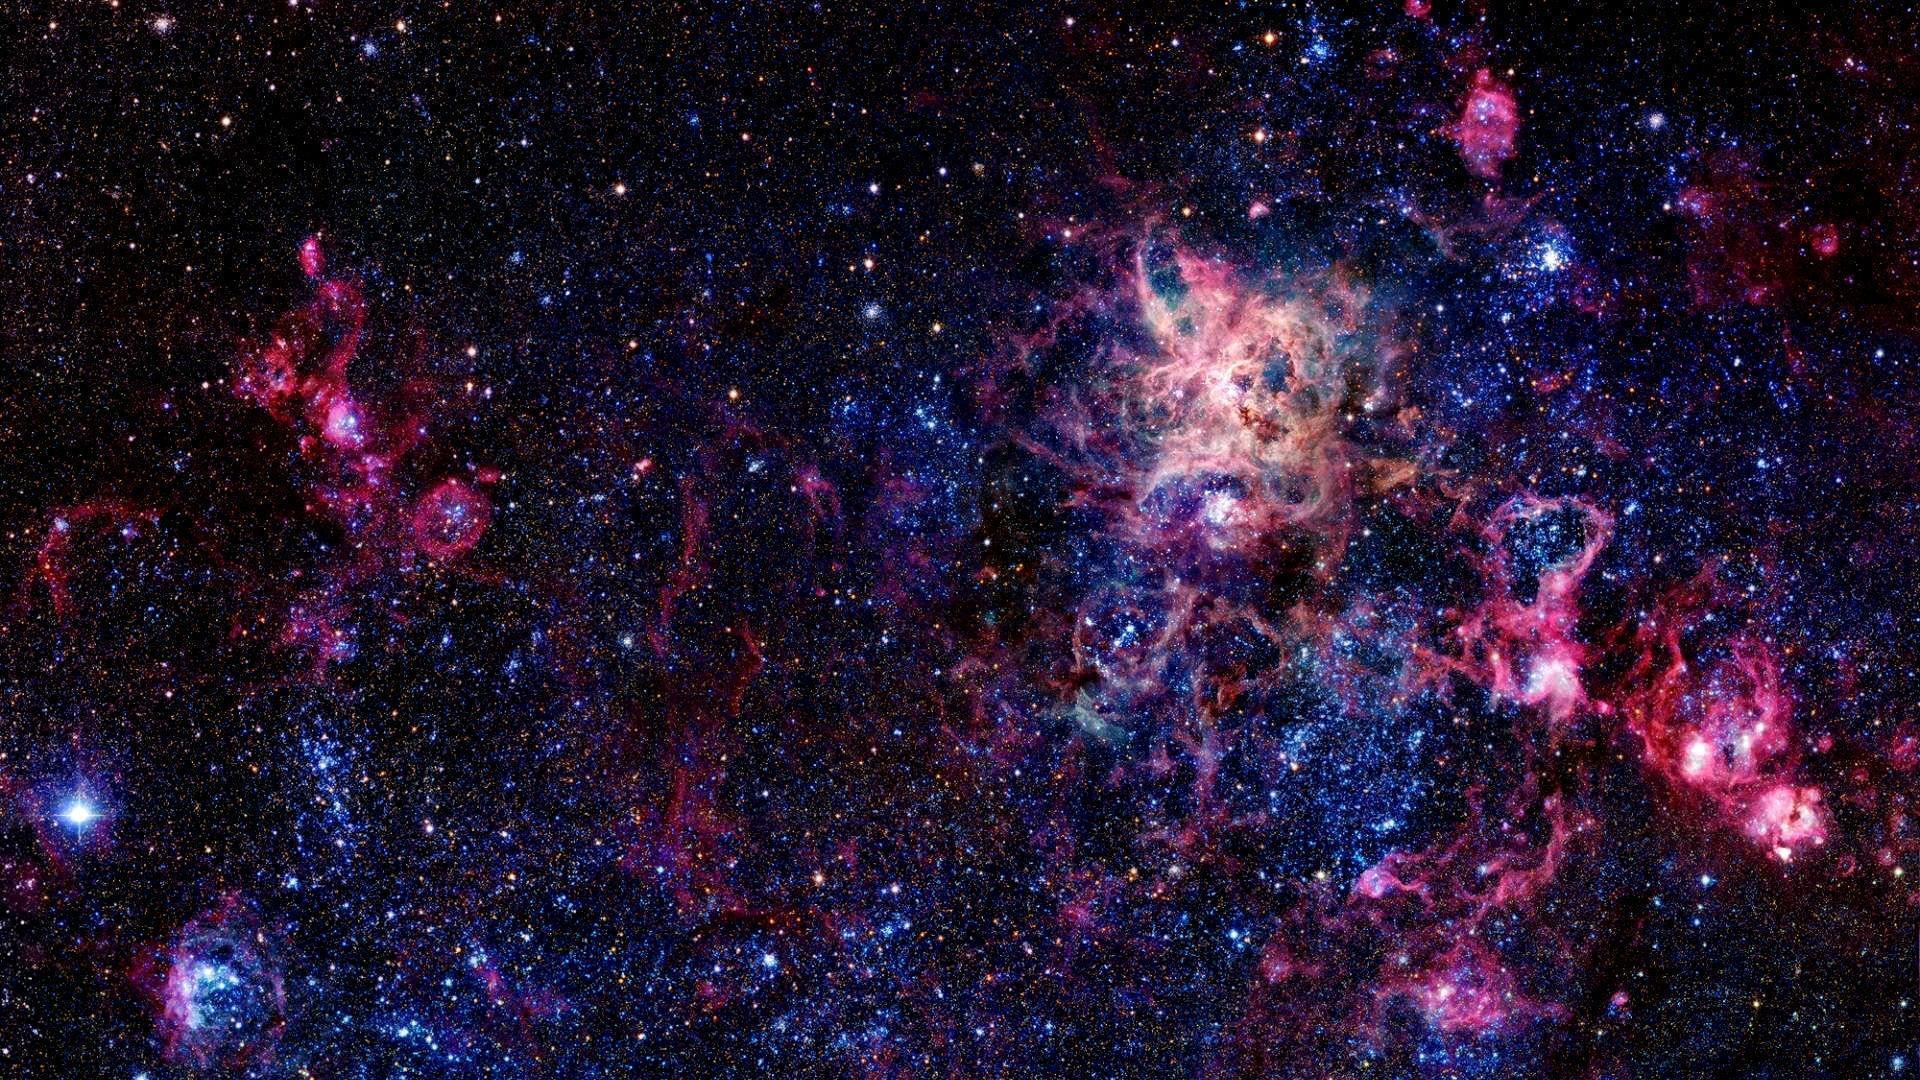 nebula background tumblr - photo #3